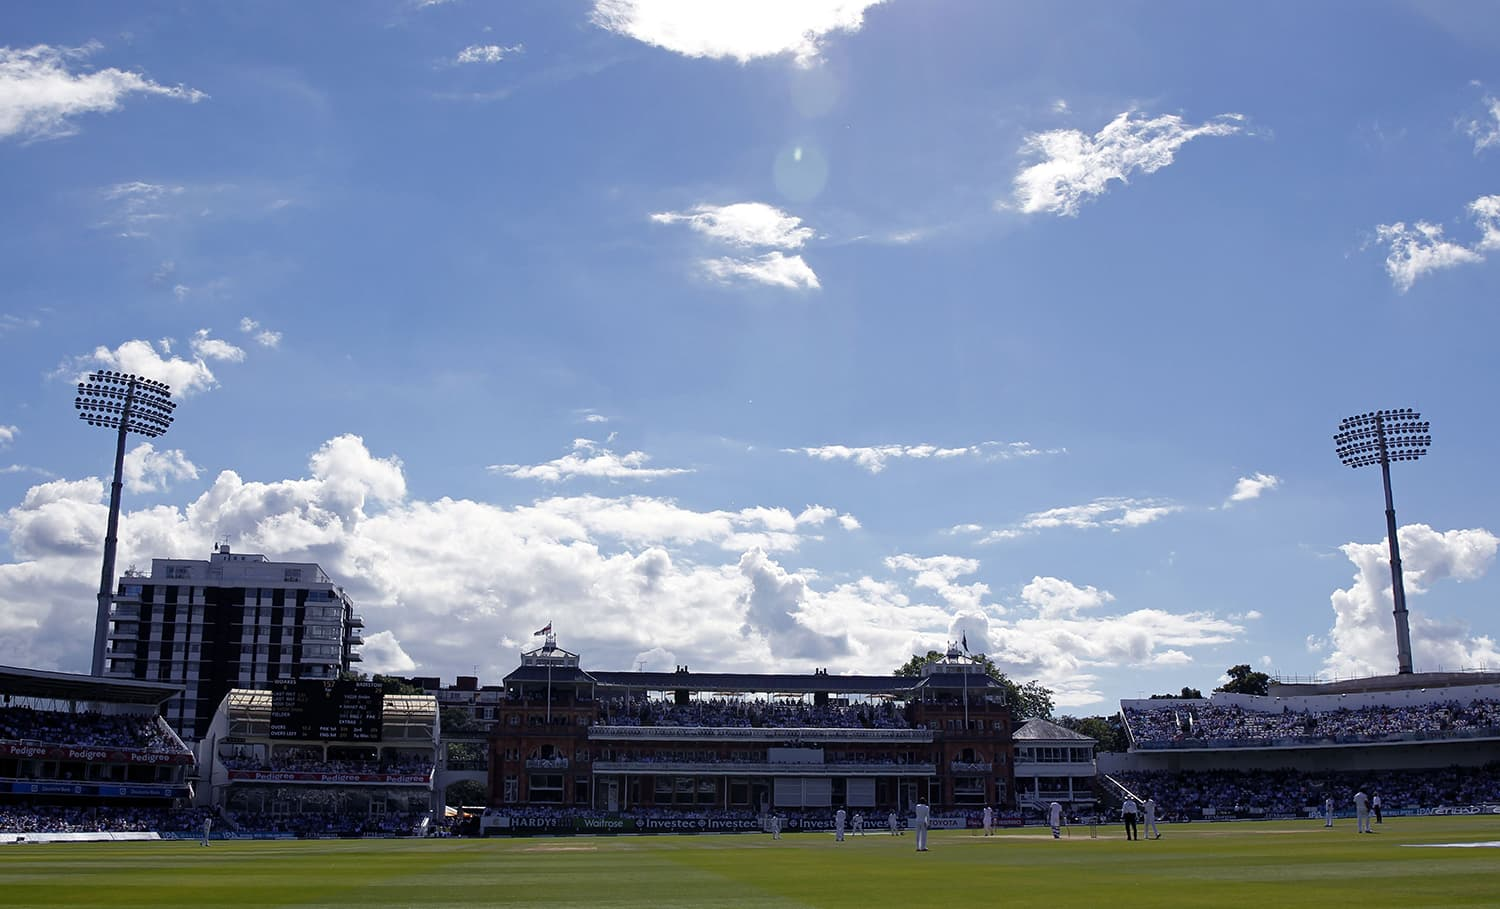 A view of the iconic Lord's Cricket Ground. — AFP